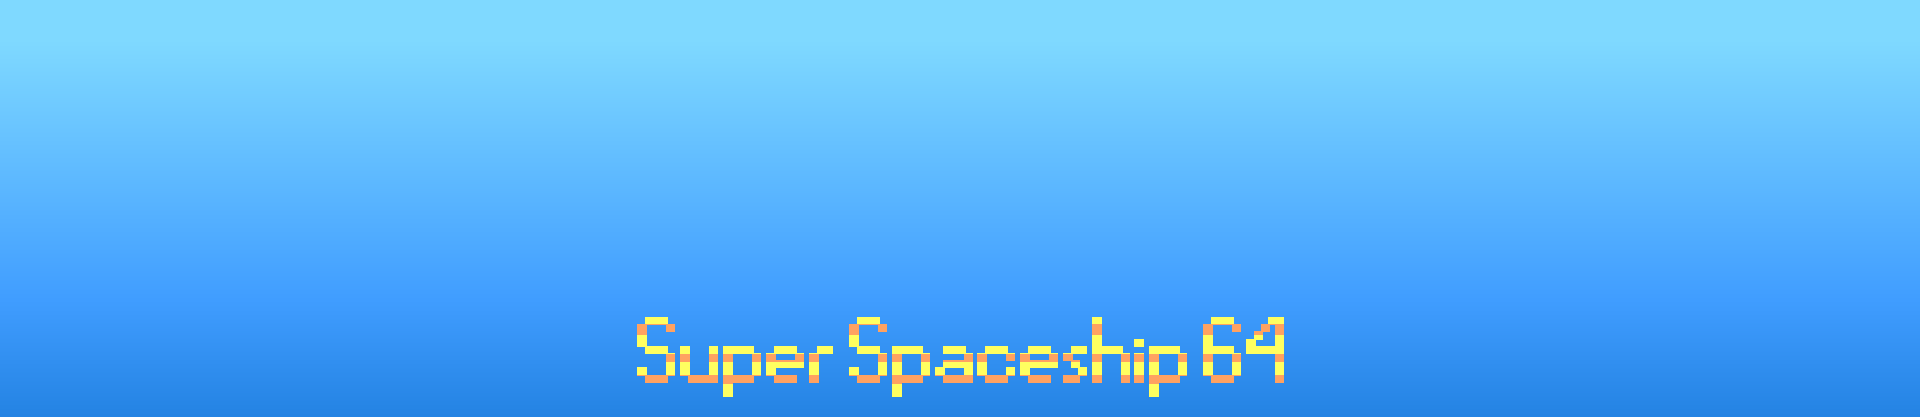 Super Spaceship 64